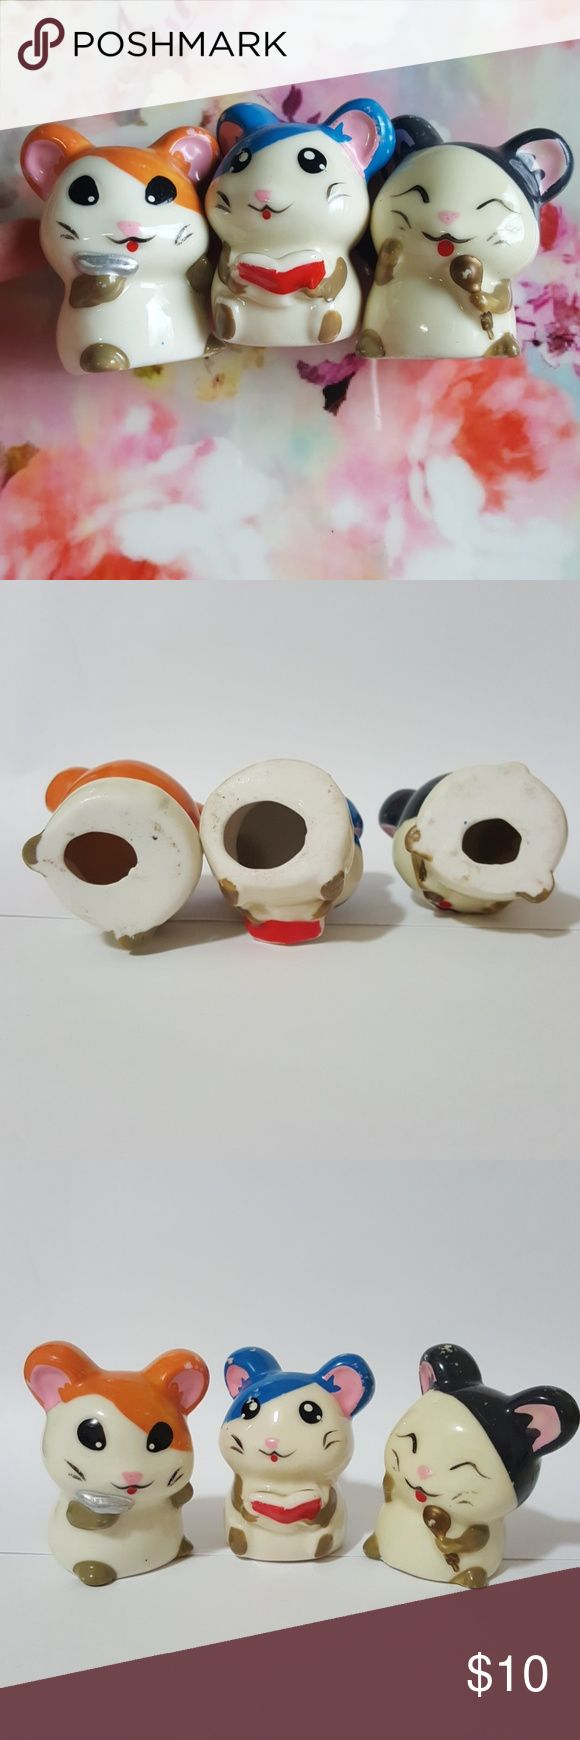 Rare Anime Hamtaro Hamster Animal Kawaii Cute Lot Selling all 3 together. PRICE FIRM unless bundle. NO TRADE. See wear in pics.  tags: ceramic glass smooth glossy sunflower seed book karaoke sing fun figure figurine display action toy statues mini display deco set antique vintage retro ancient old oriental traditional unique display hang hanging showcase show home house room living decorate deco sweet cute kawaii Japan Japanese otaku  collector collectible children kid school Other